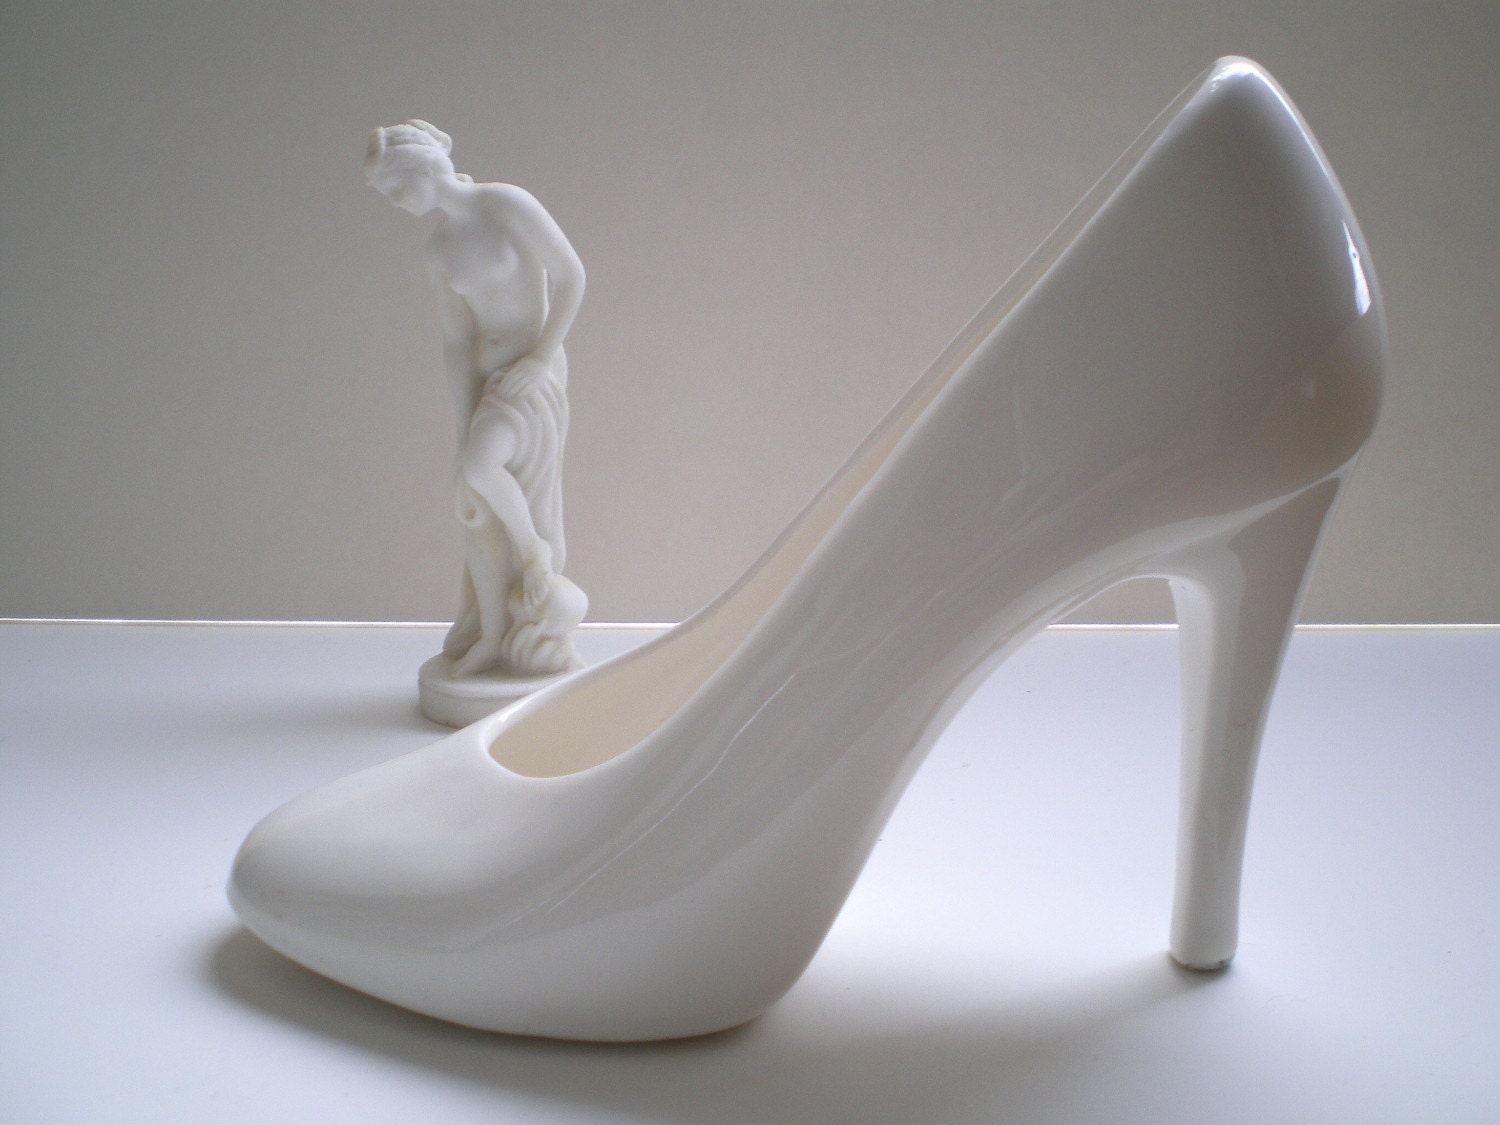 Life size ceramic high heel planter or figurine by tasticlife